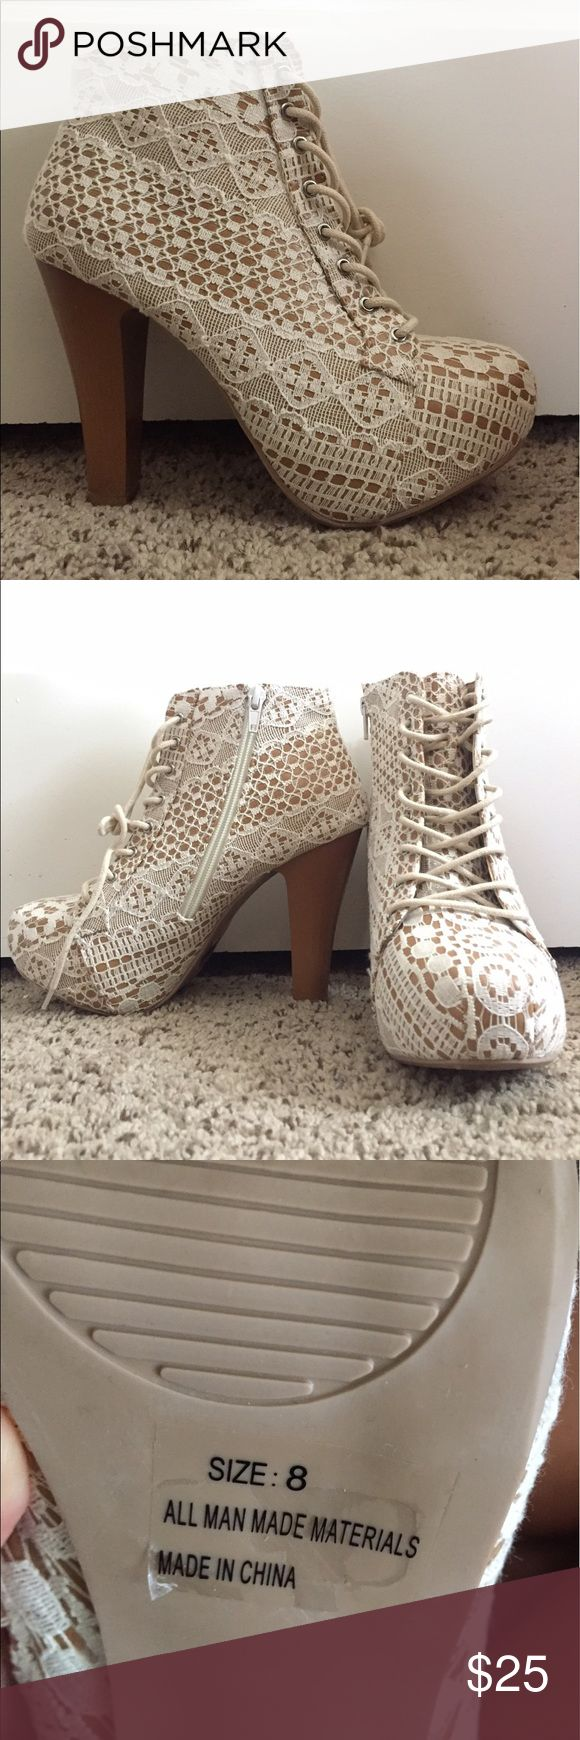 White Lace Heels These have never been worn! The white lace is a beautiful detail, these heels are stunning. They are a US 8. Charlotte Russe Shoes Heels